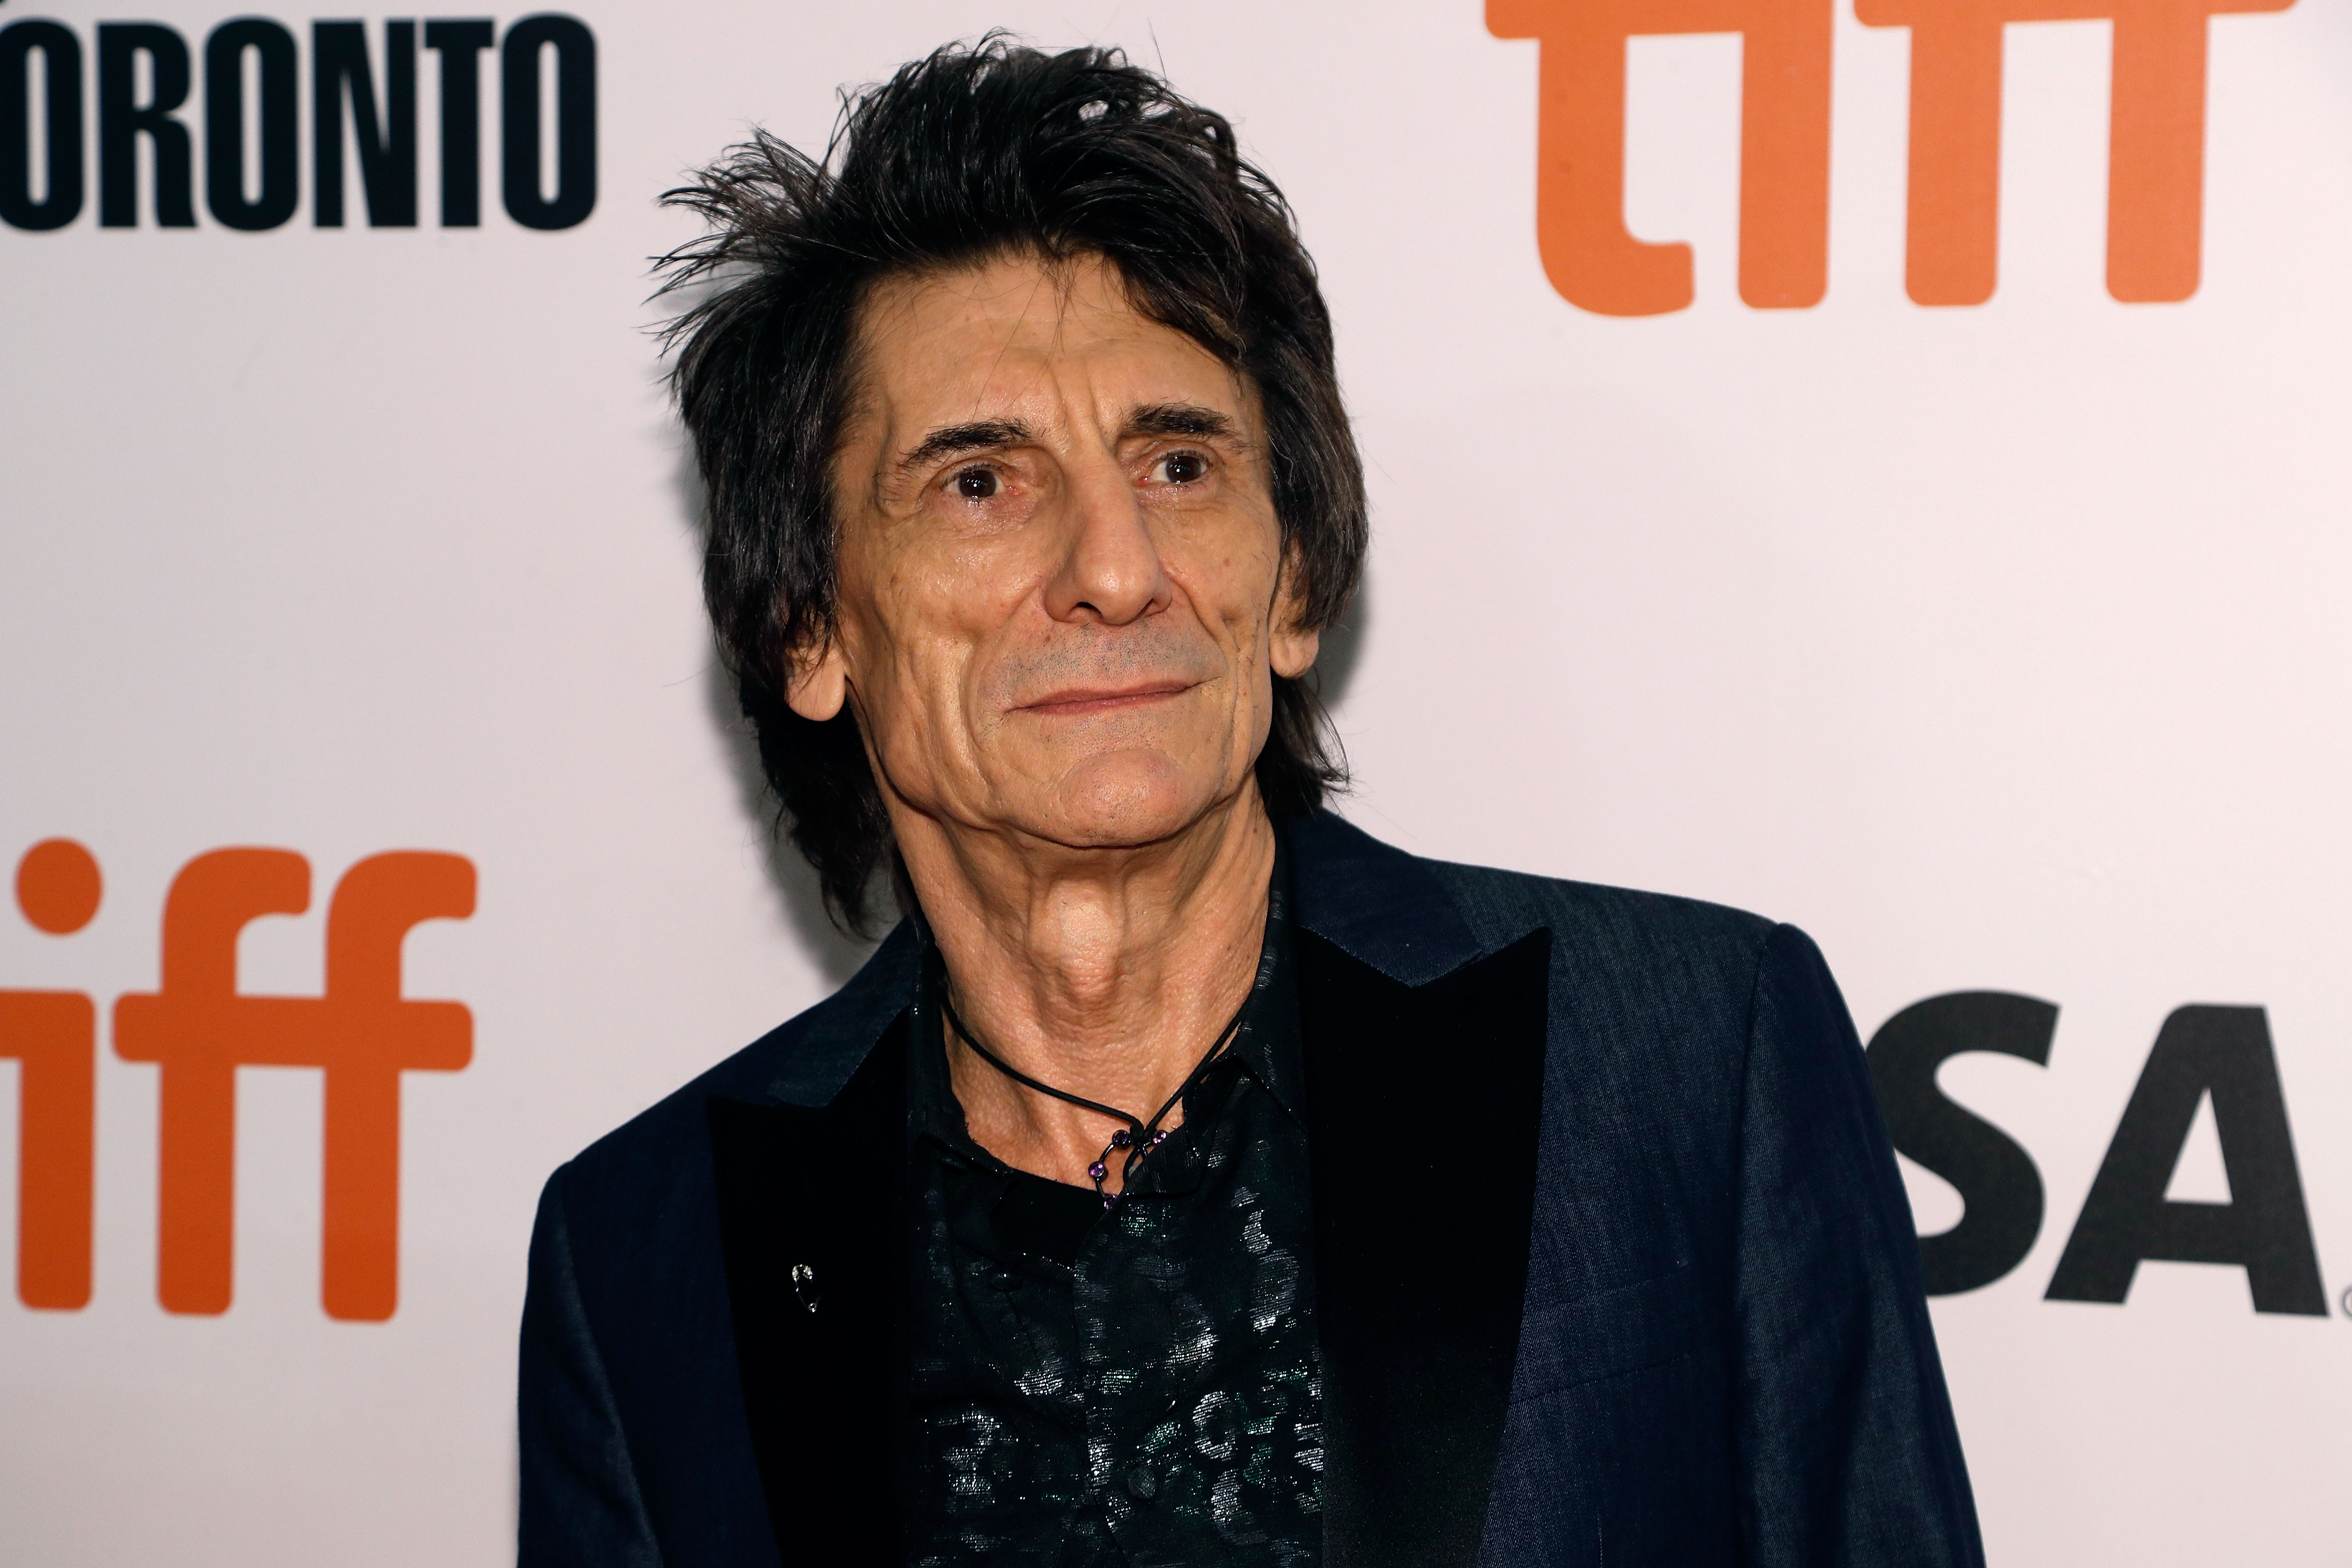 Ronnie Wood at the 2016 Toronto International Film Festival.